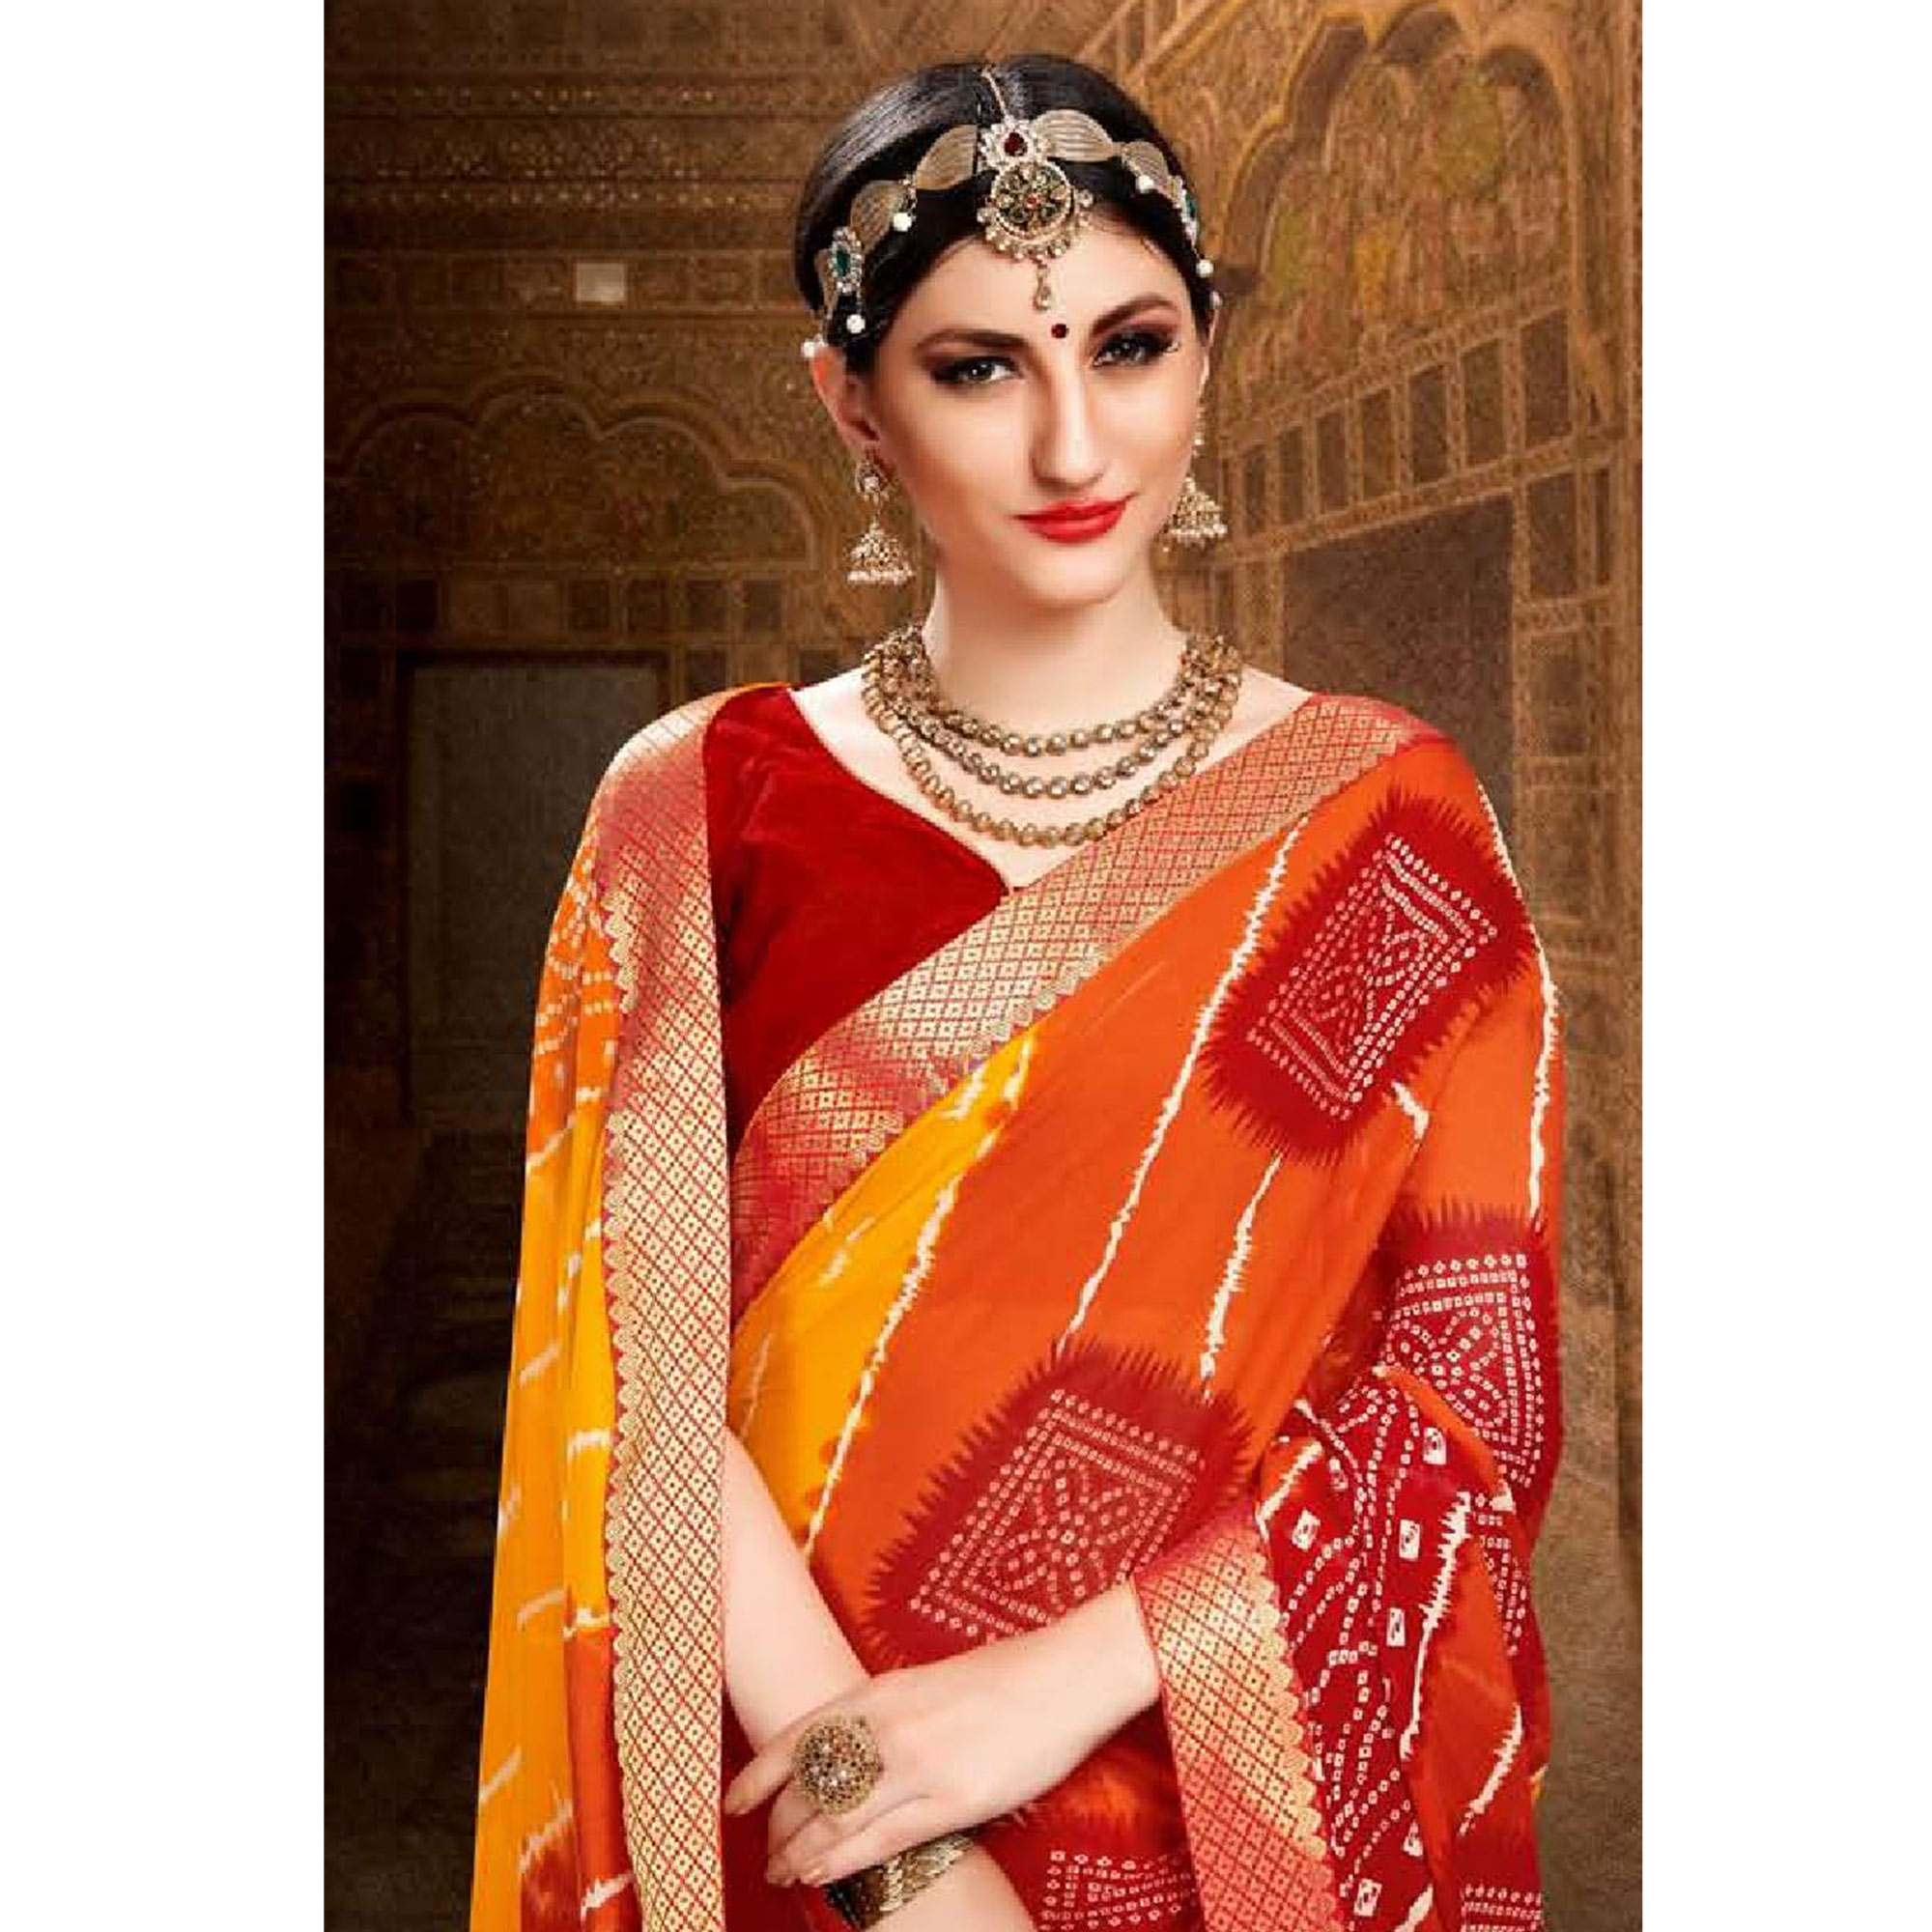 Arresting Yellow-Orange Colored Bandhani Printed Heavy Georgette Saree With Jacquard Lace Border